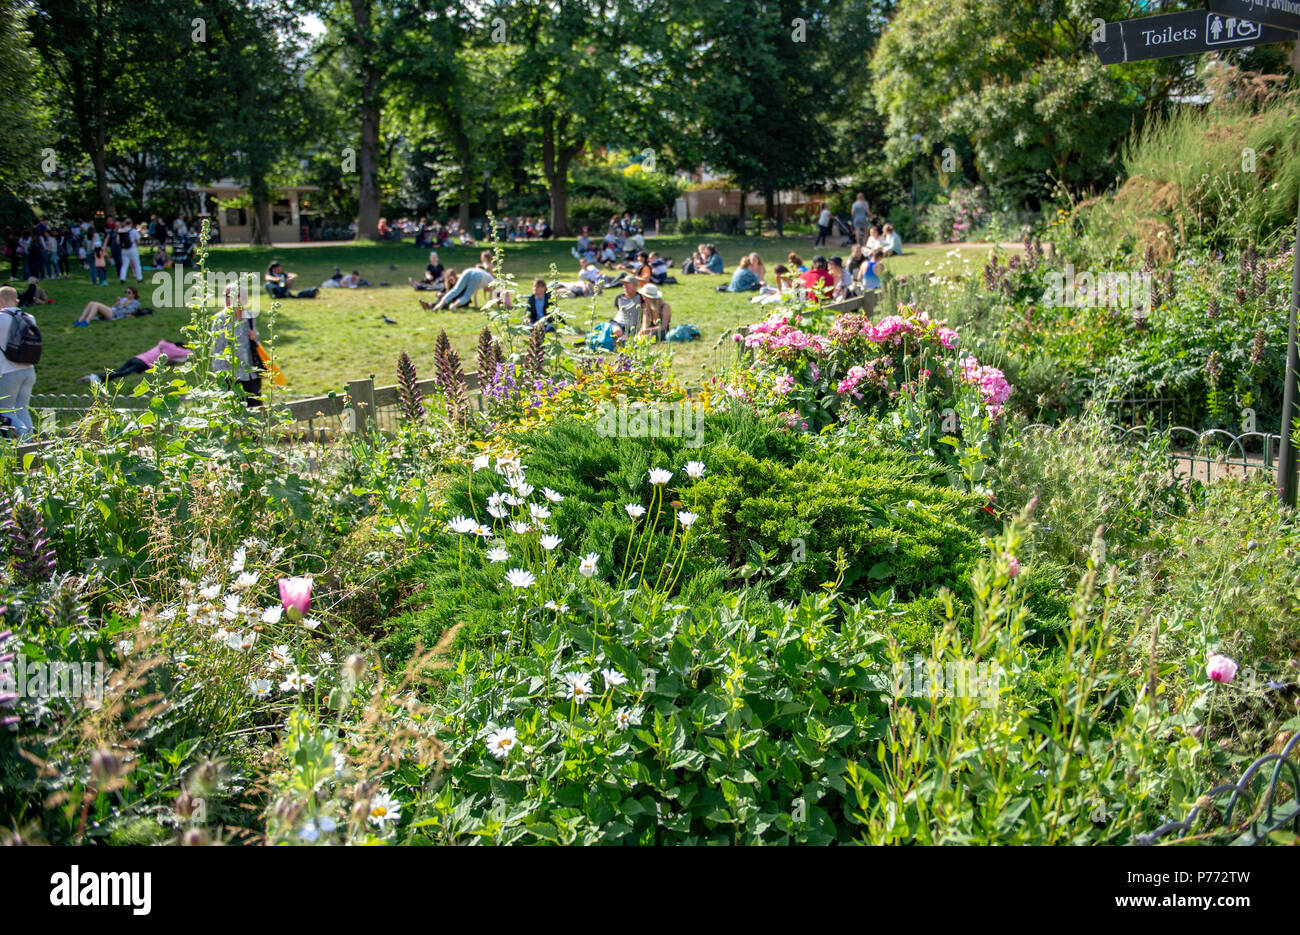 Brighton Royal Pavilion and Gardens during hot summer weather June 2018 - Stock Image